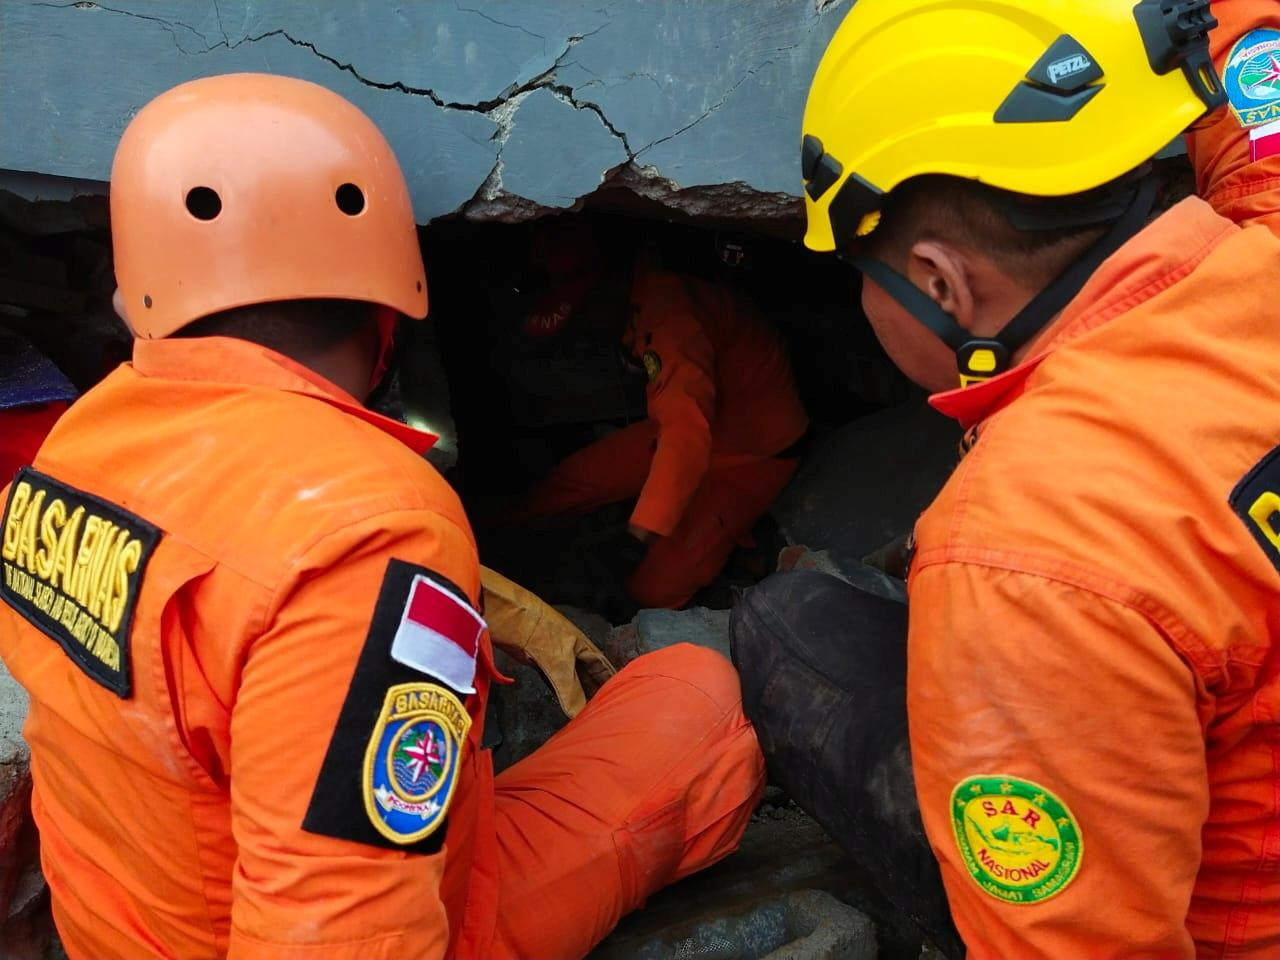 Members of a search and rescue agency team dig through rubble after an earthquake, in Mamuju, West Sulawesi Province, Indonesia January 15, 2021. Photo: Reuters